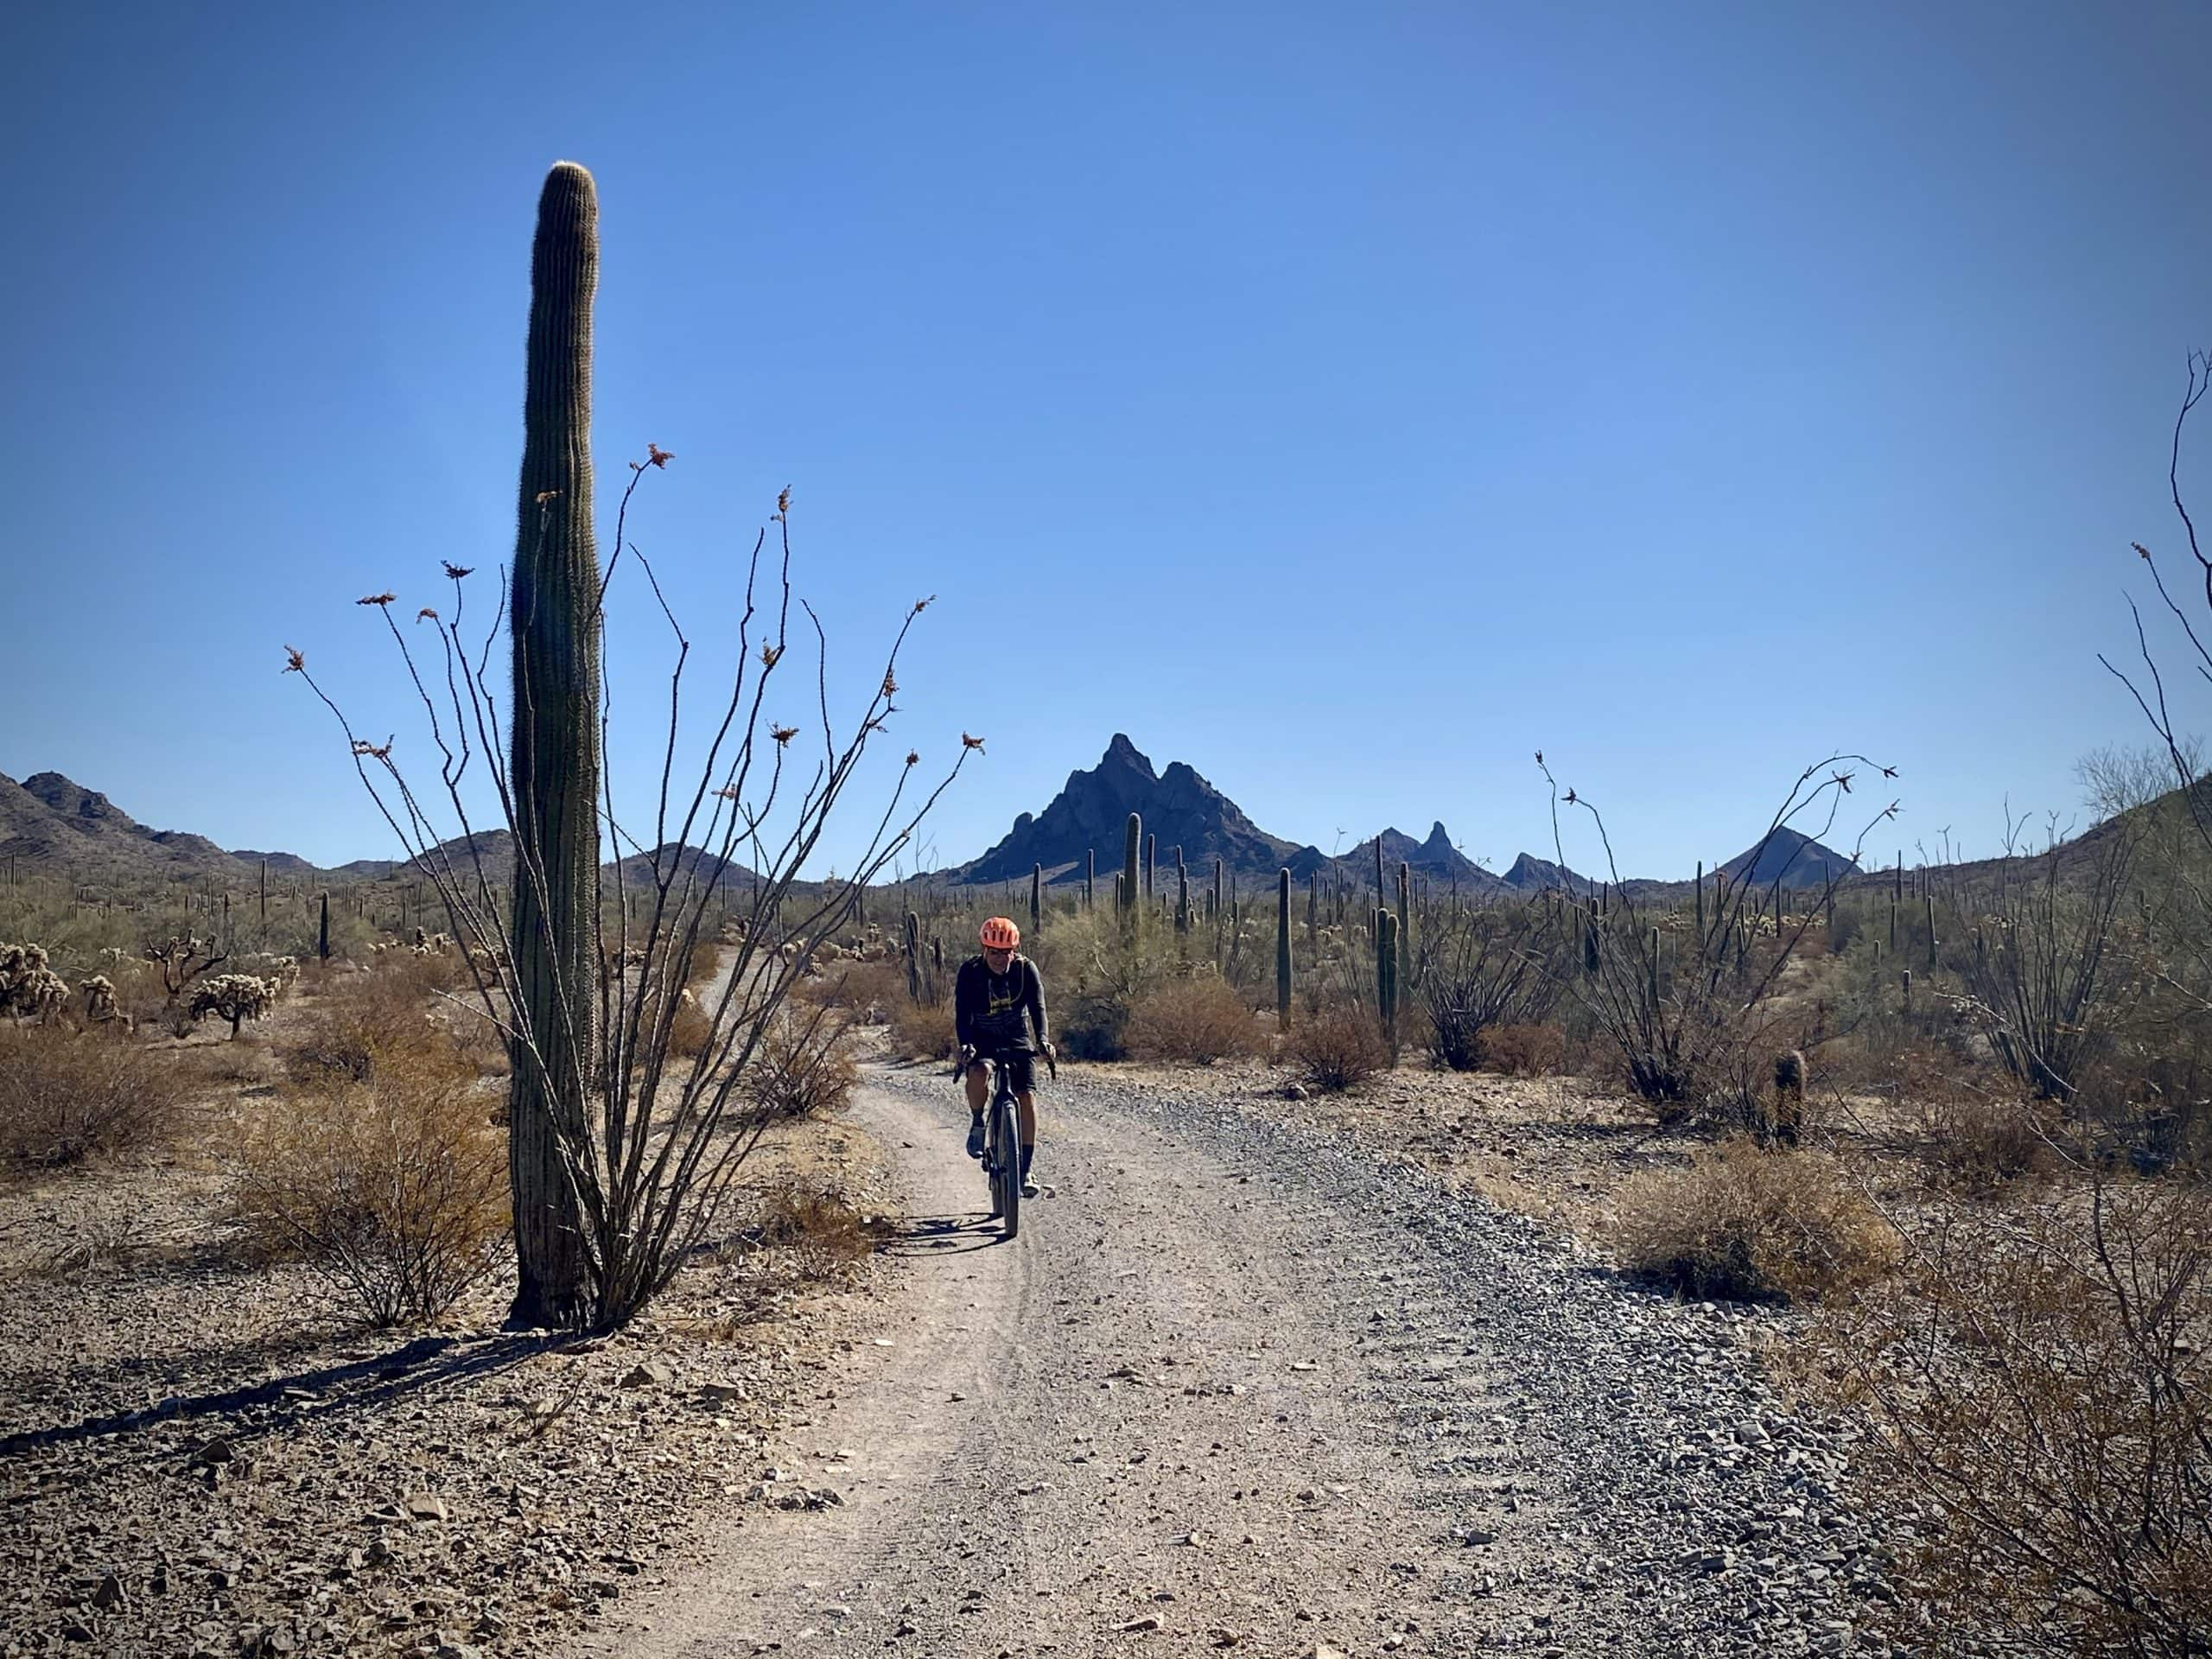 Cyclist on Charlie Bell road with North Ajo peak in the background.